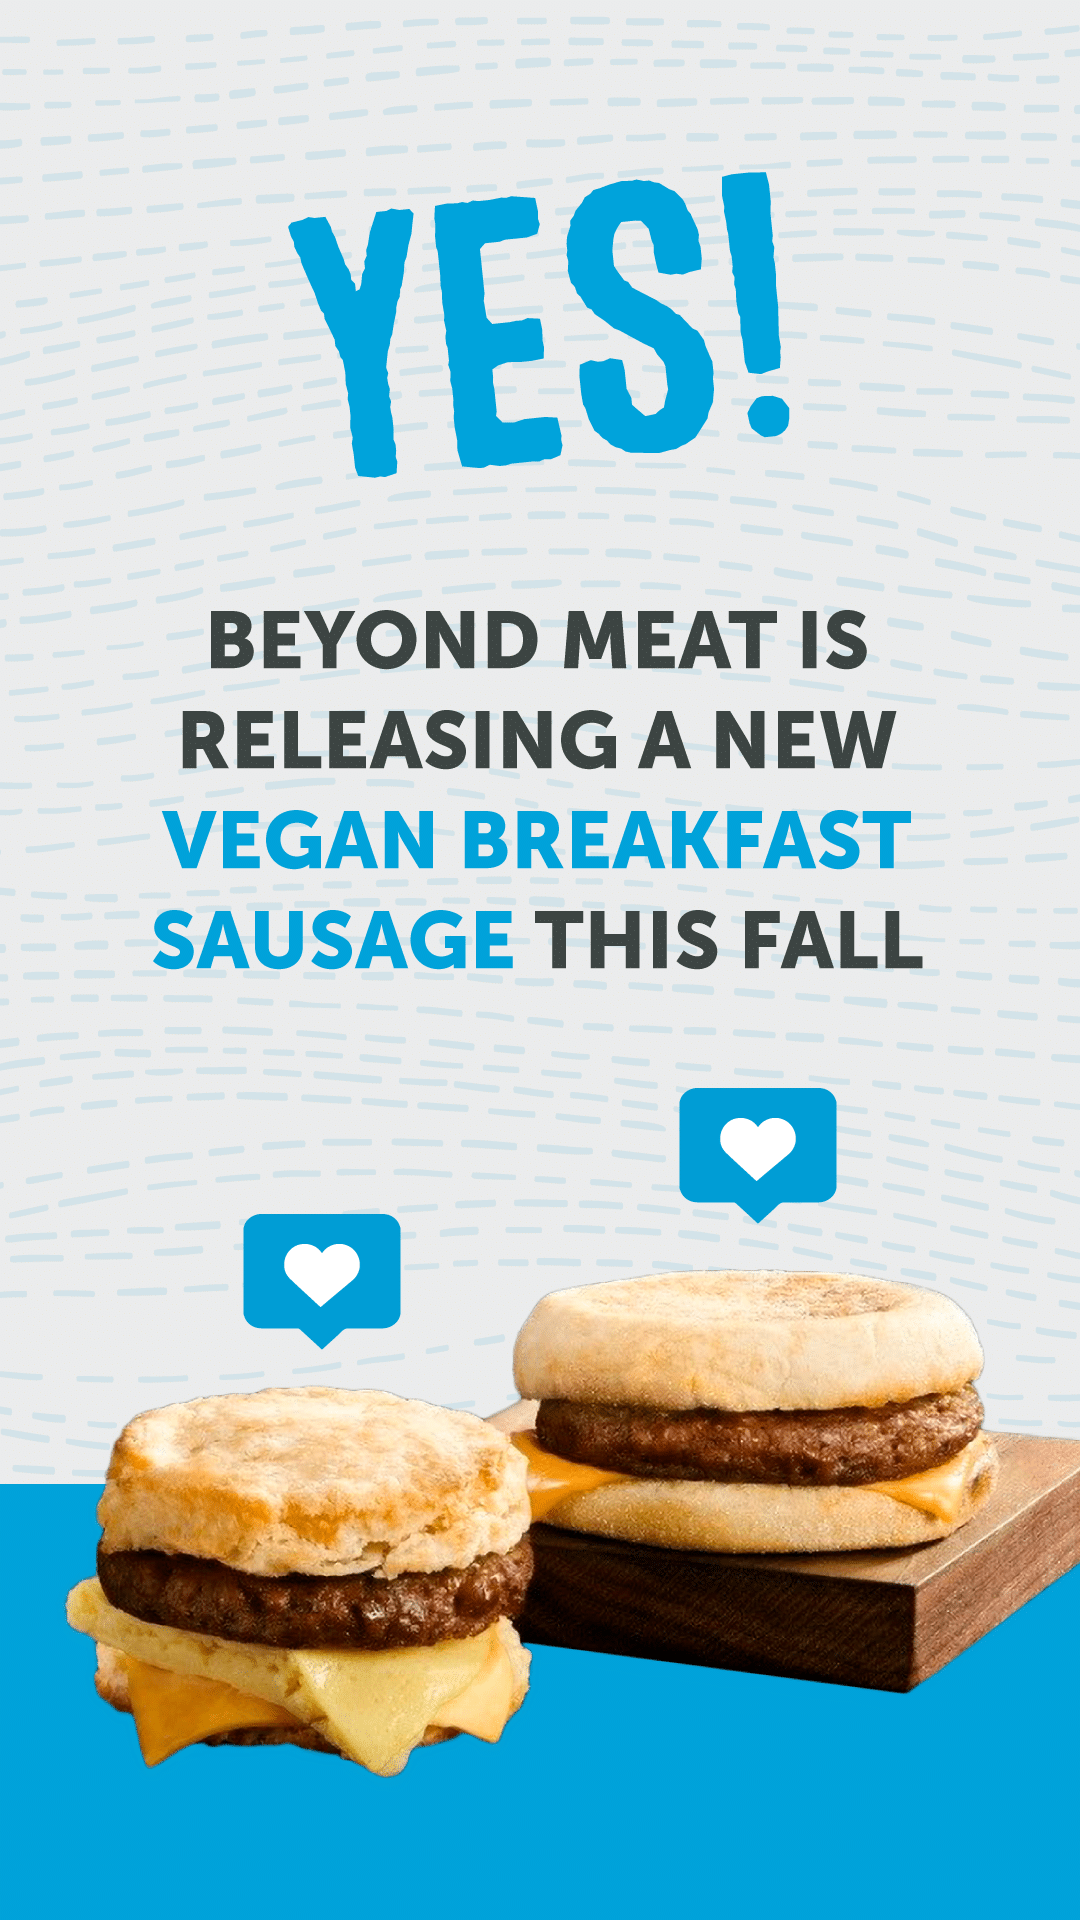 YES! Beyond Meat Is Releasing a New Vegan Breakfast Sausage This Fall